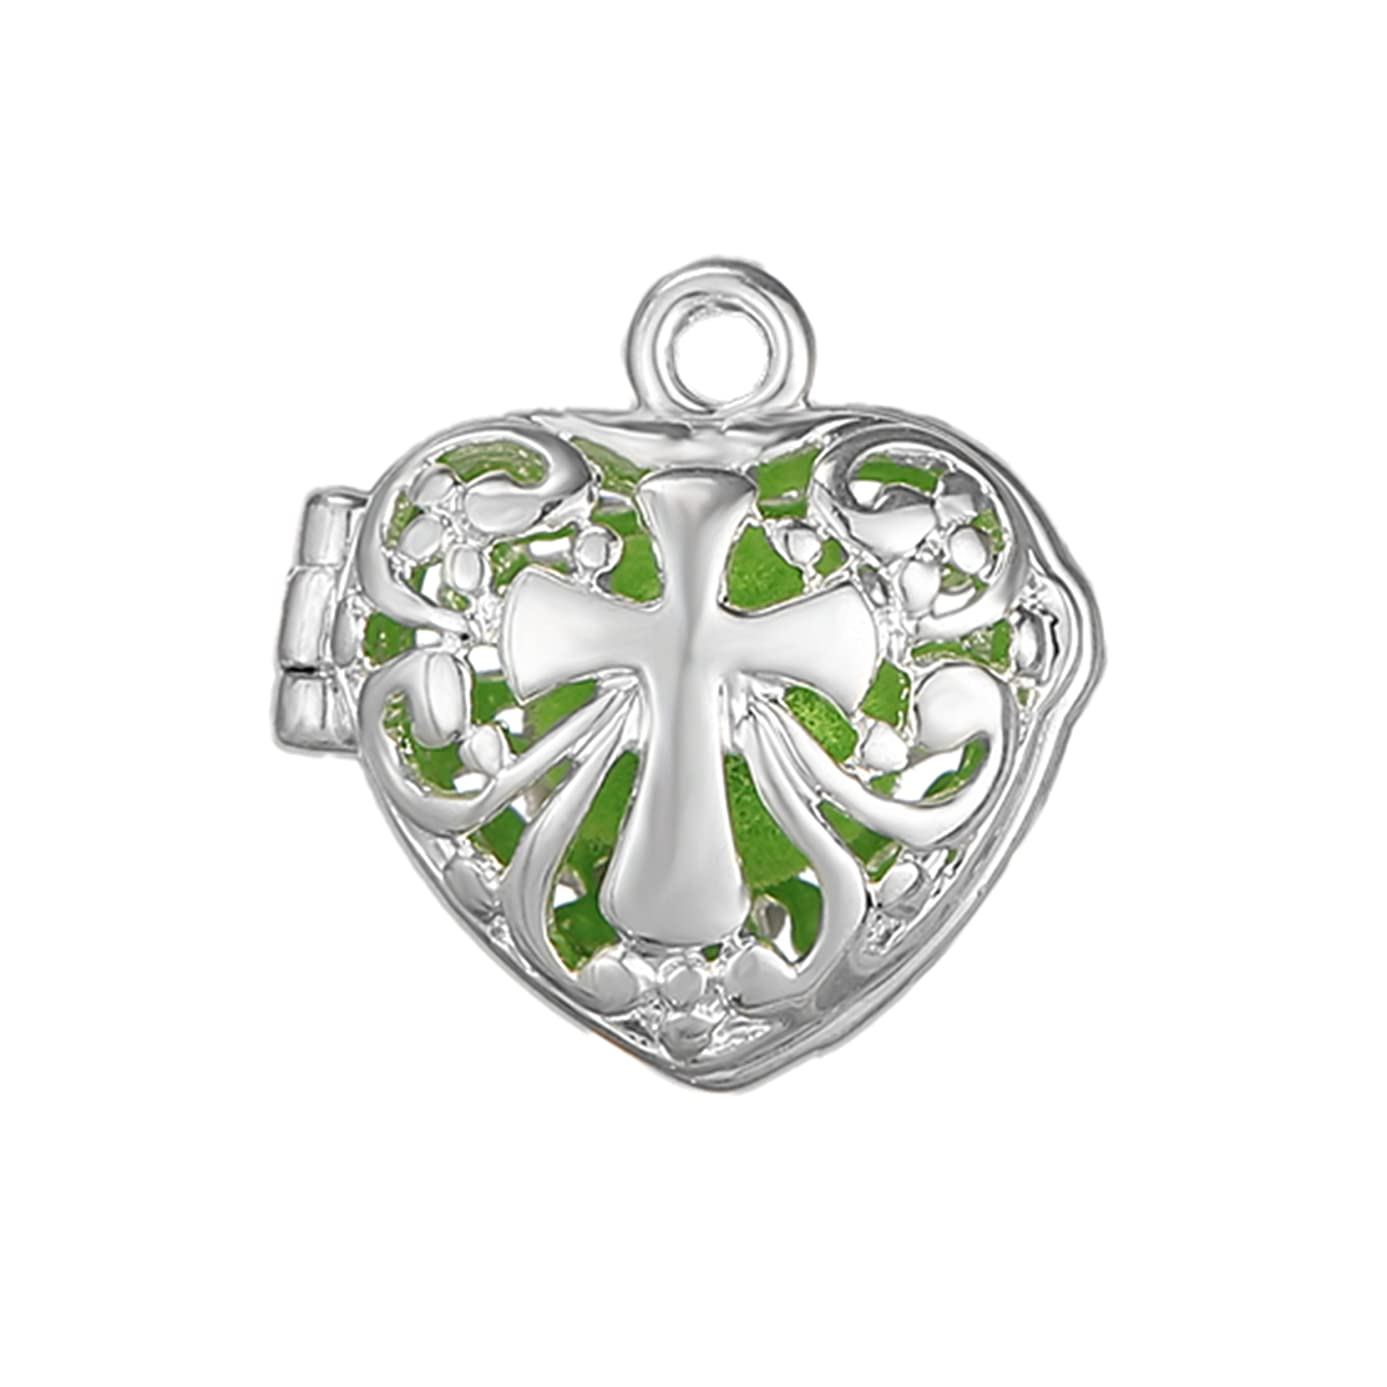 10pcs Cross Heart Shape Silver Plated Bead Cage Locket Pendant - Add Your Own Stones, Rock to Cage,Add Perfume and Essential Oils to Create a Scent Diffusing Pendant Charms Fit Necklace